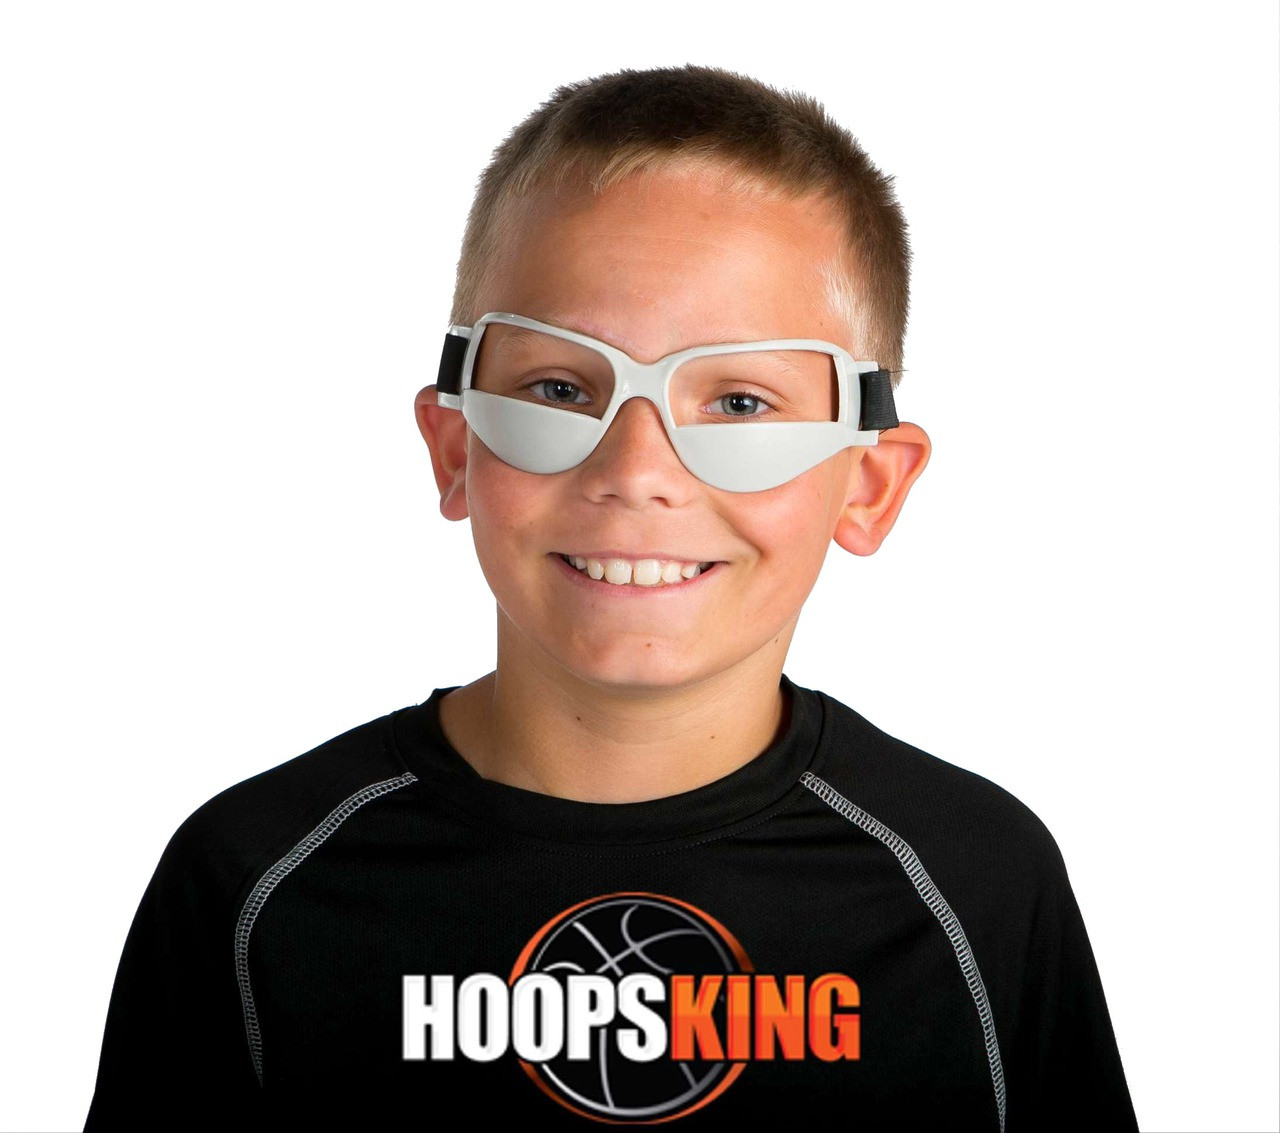 b01a5c9fbf41 Basketball Dribble Goggles - Improve Dribbling 2X Quicker